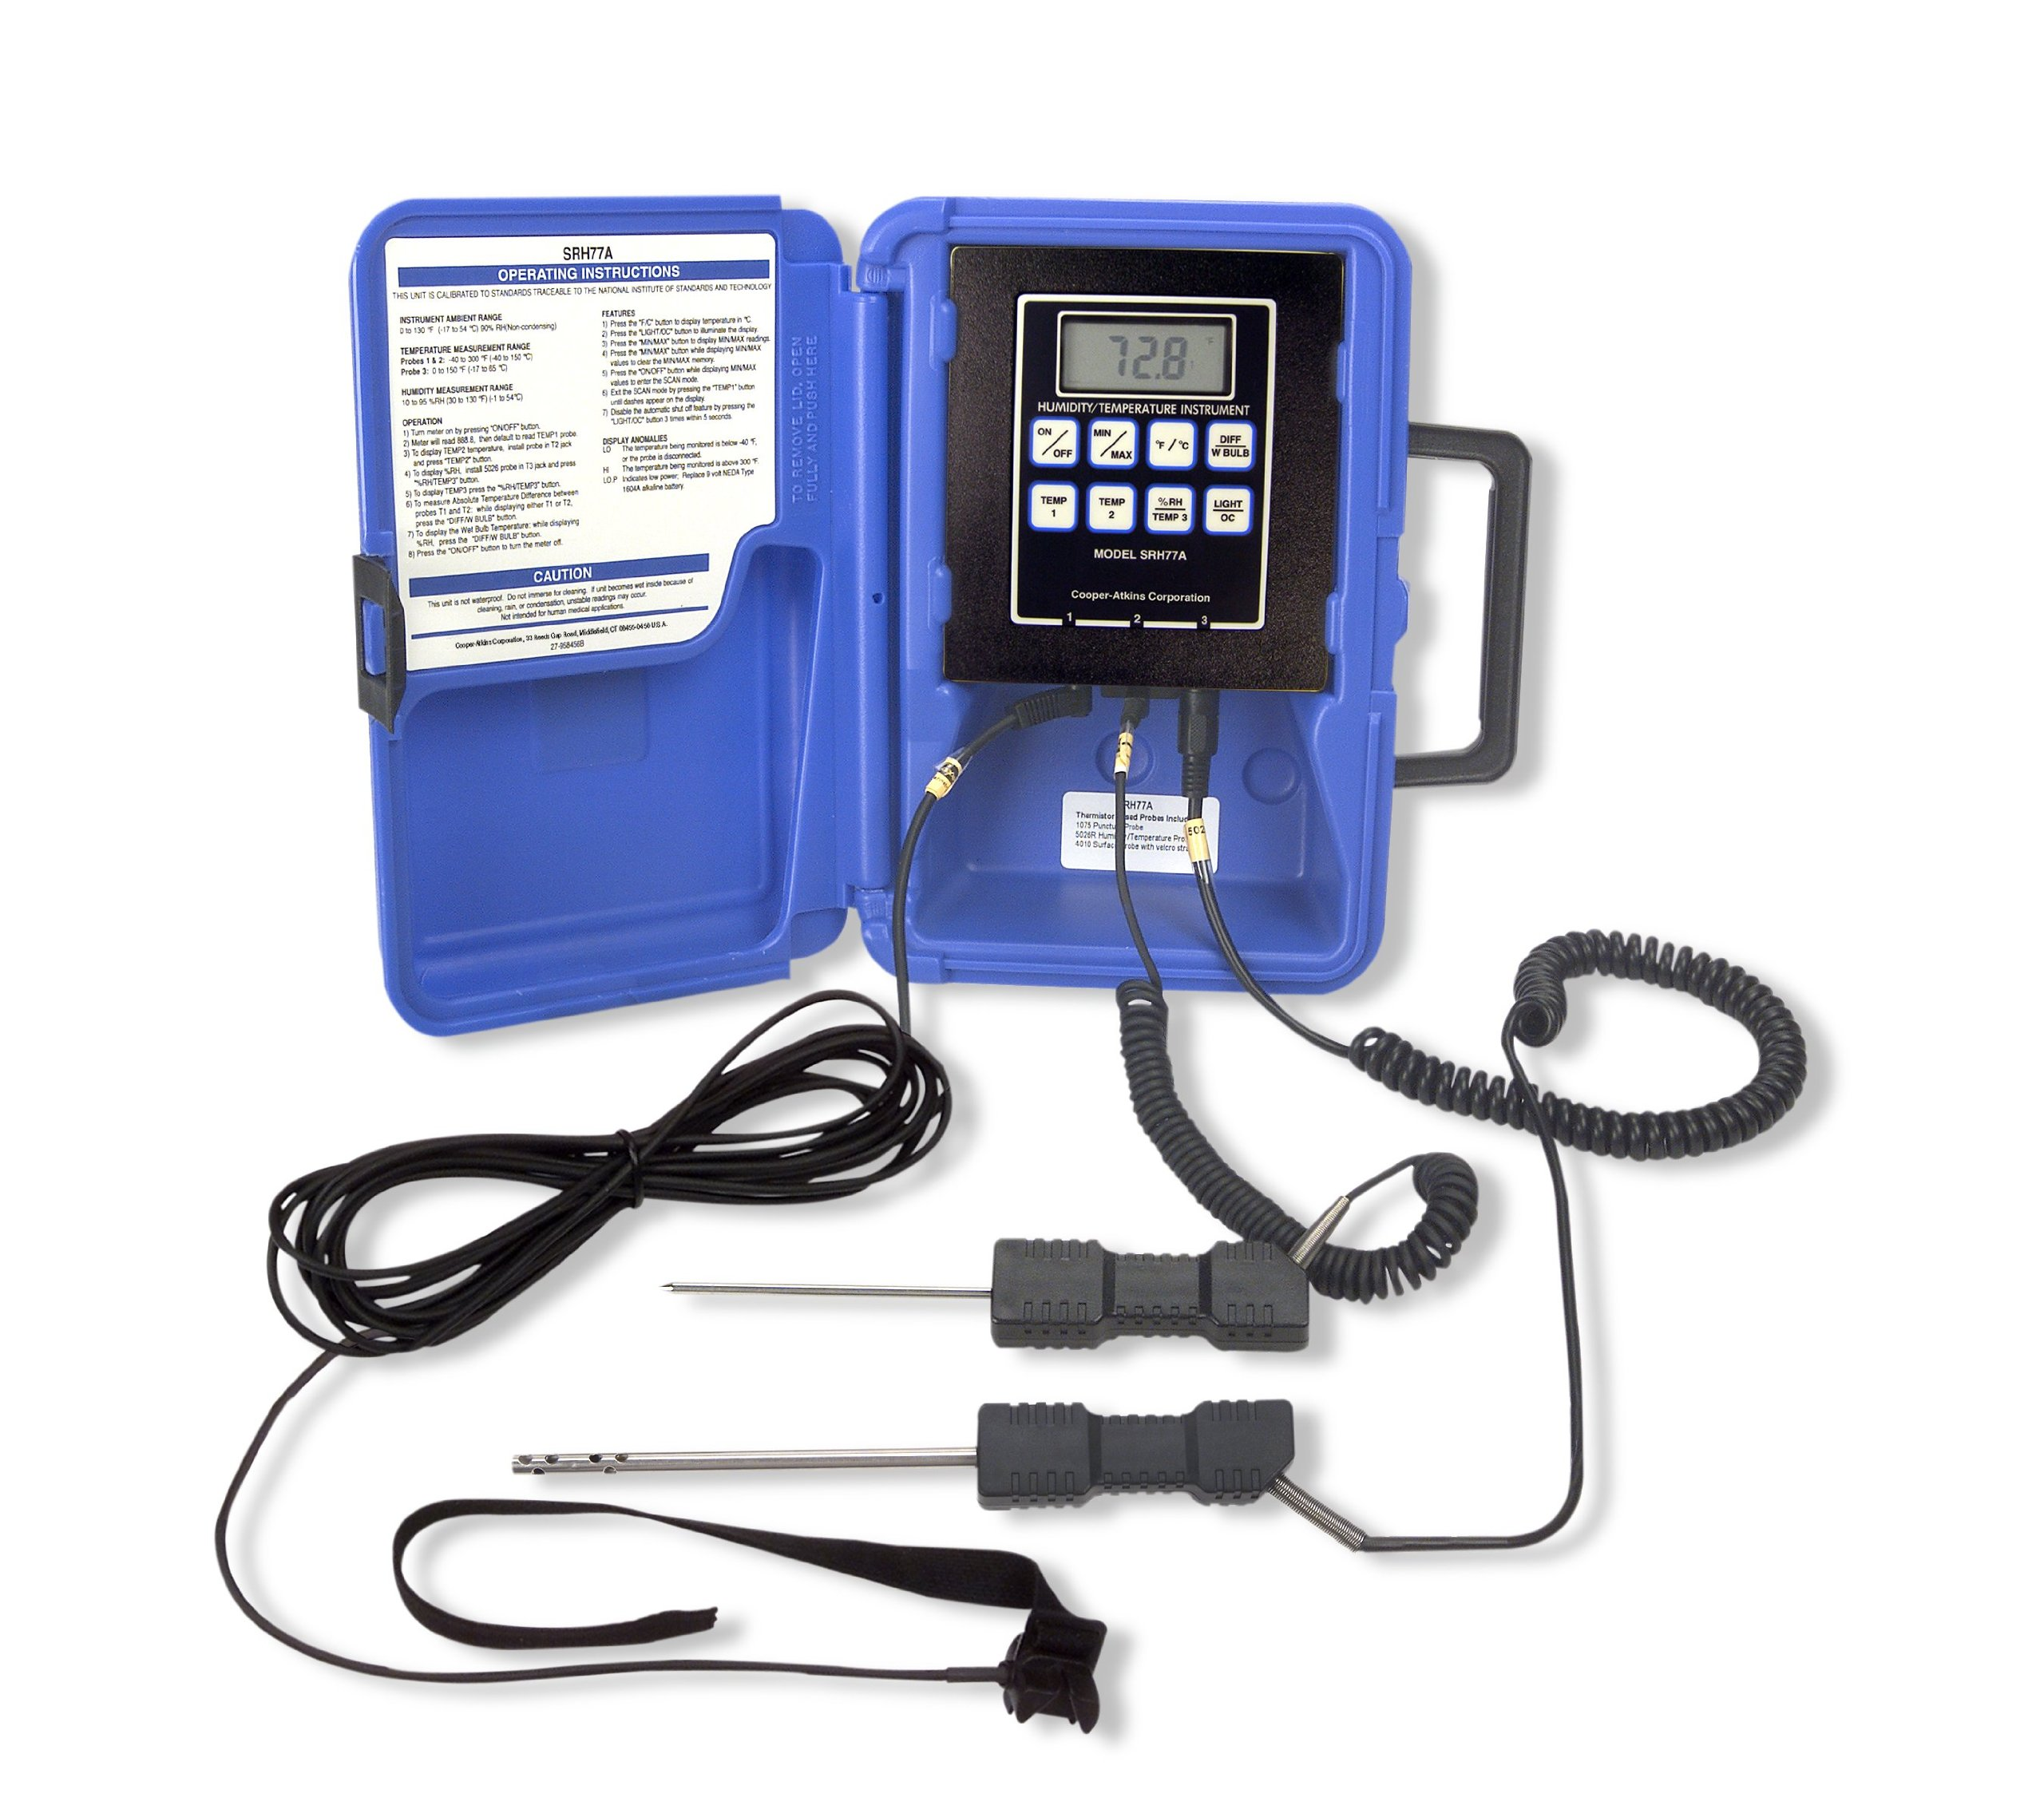 Cooper-Atkins SRH77A-E-NIST 1 and 2 Zone Temperature/Humidity Thermistor Instrument with 1075 General Purpose Puncture Probe, 4011 Pipe Strap Probe and 5028 Humidity Probe, NIST Certifications, -40°F to 300°F Temperature Range